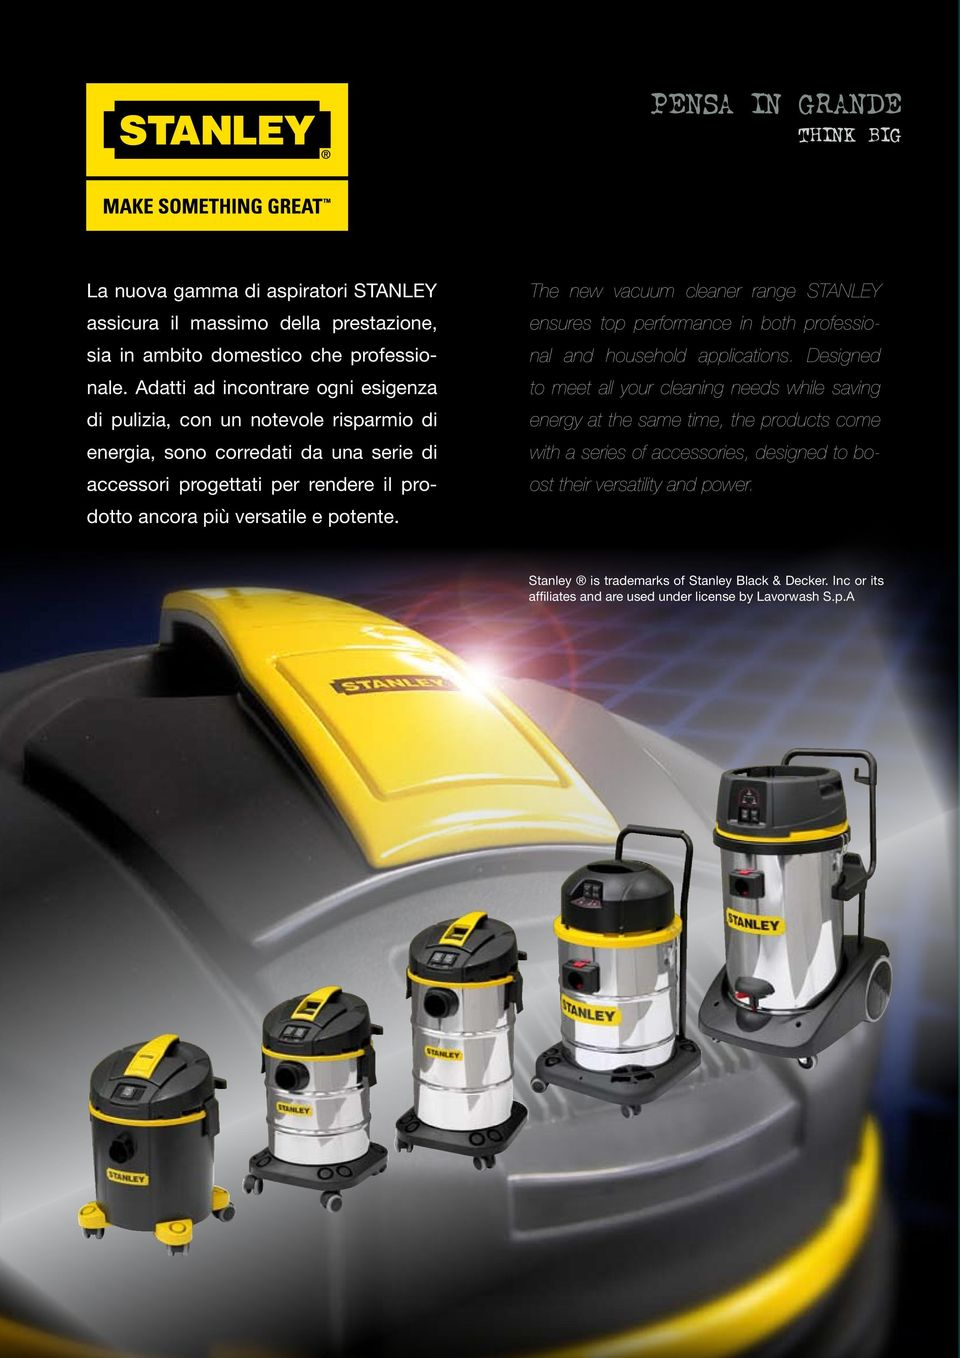 potente. The new vacuum cleaner range STANLEY ensures top performance in both professional and household applications.